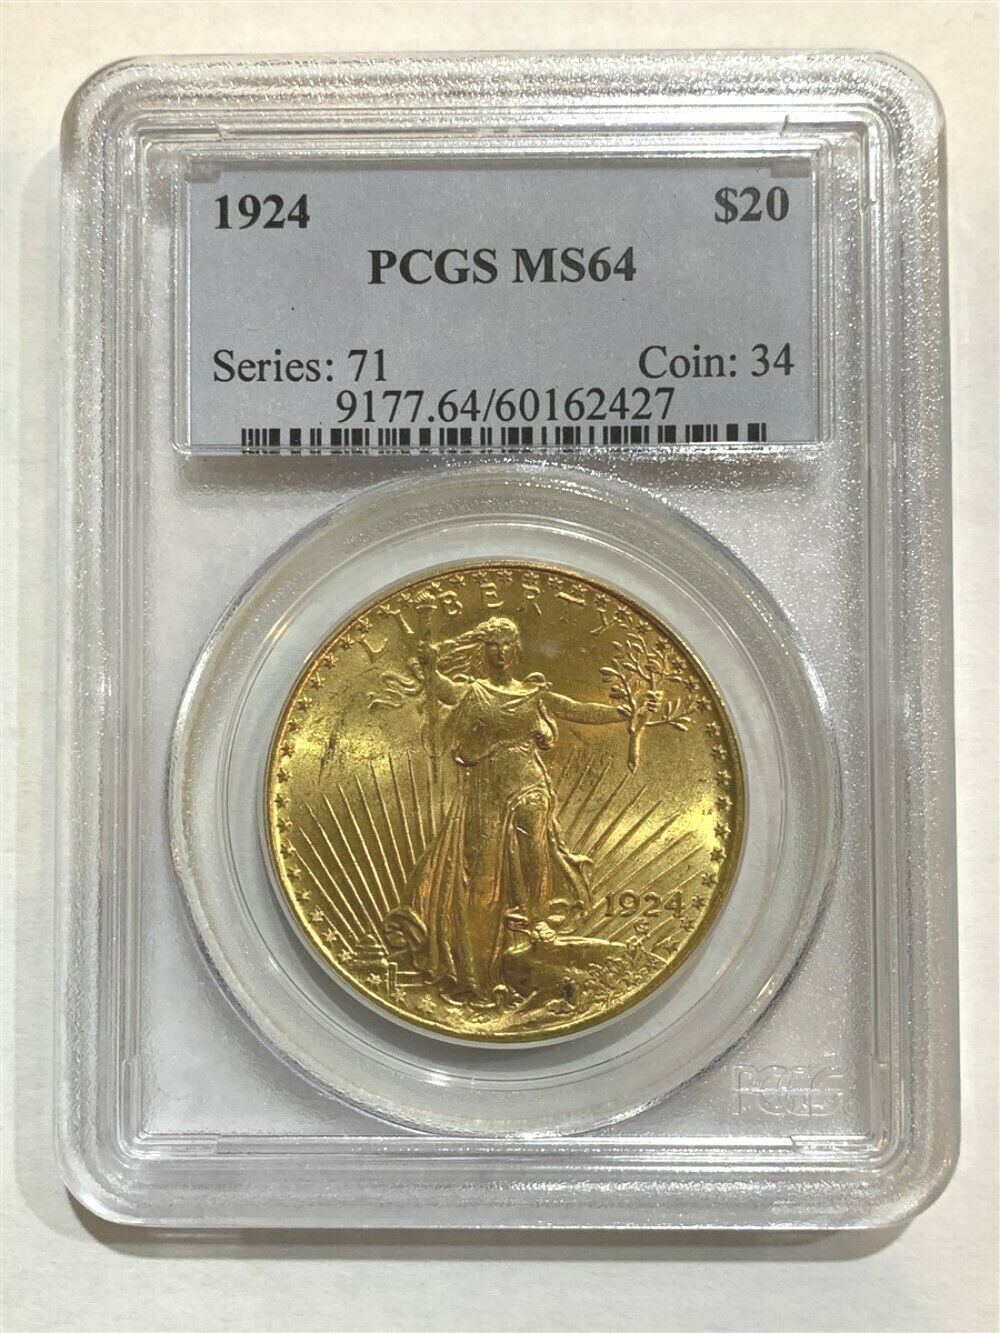 1924 $20 PCGS MS-64 Gold Double Eagle Saint Gaudens Coin